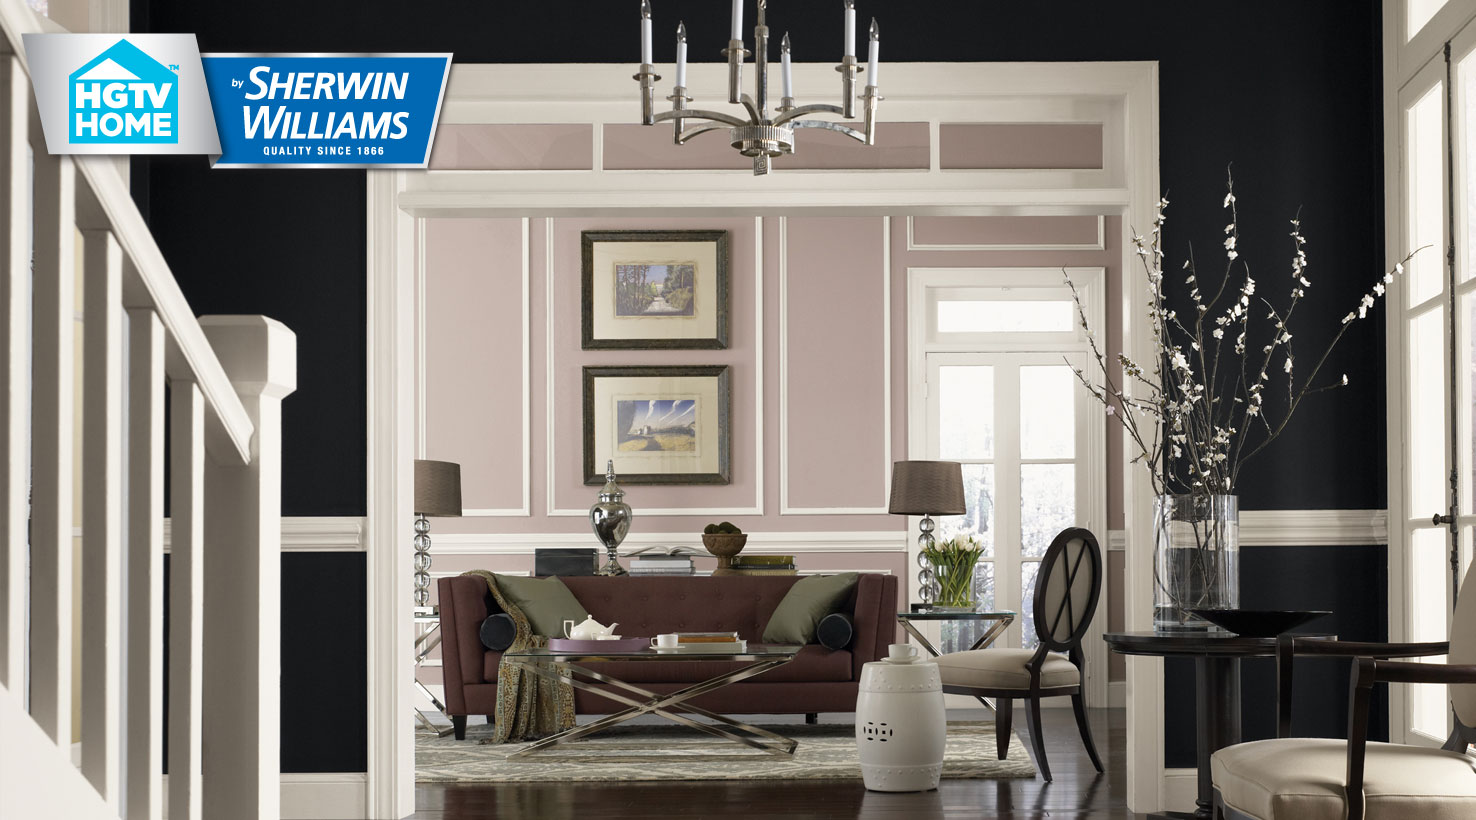 Unusual Get Inspired By Rooms We Love Liveable Luxe Paint Color Collection Hgtv By Sherwin Williams Snowbound Undertone Sherwin Williams Snowbound On Kitchen Cabinets houzz-02 Sherwin Williams Snowbound